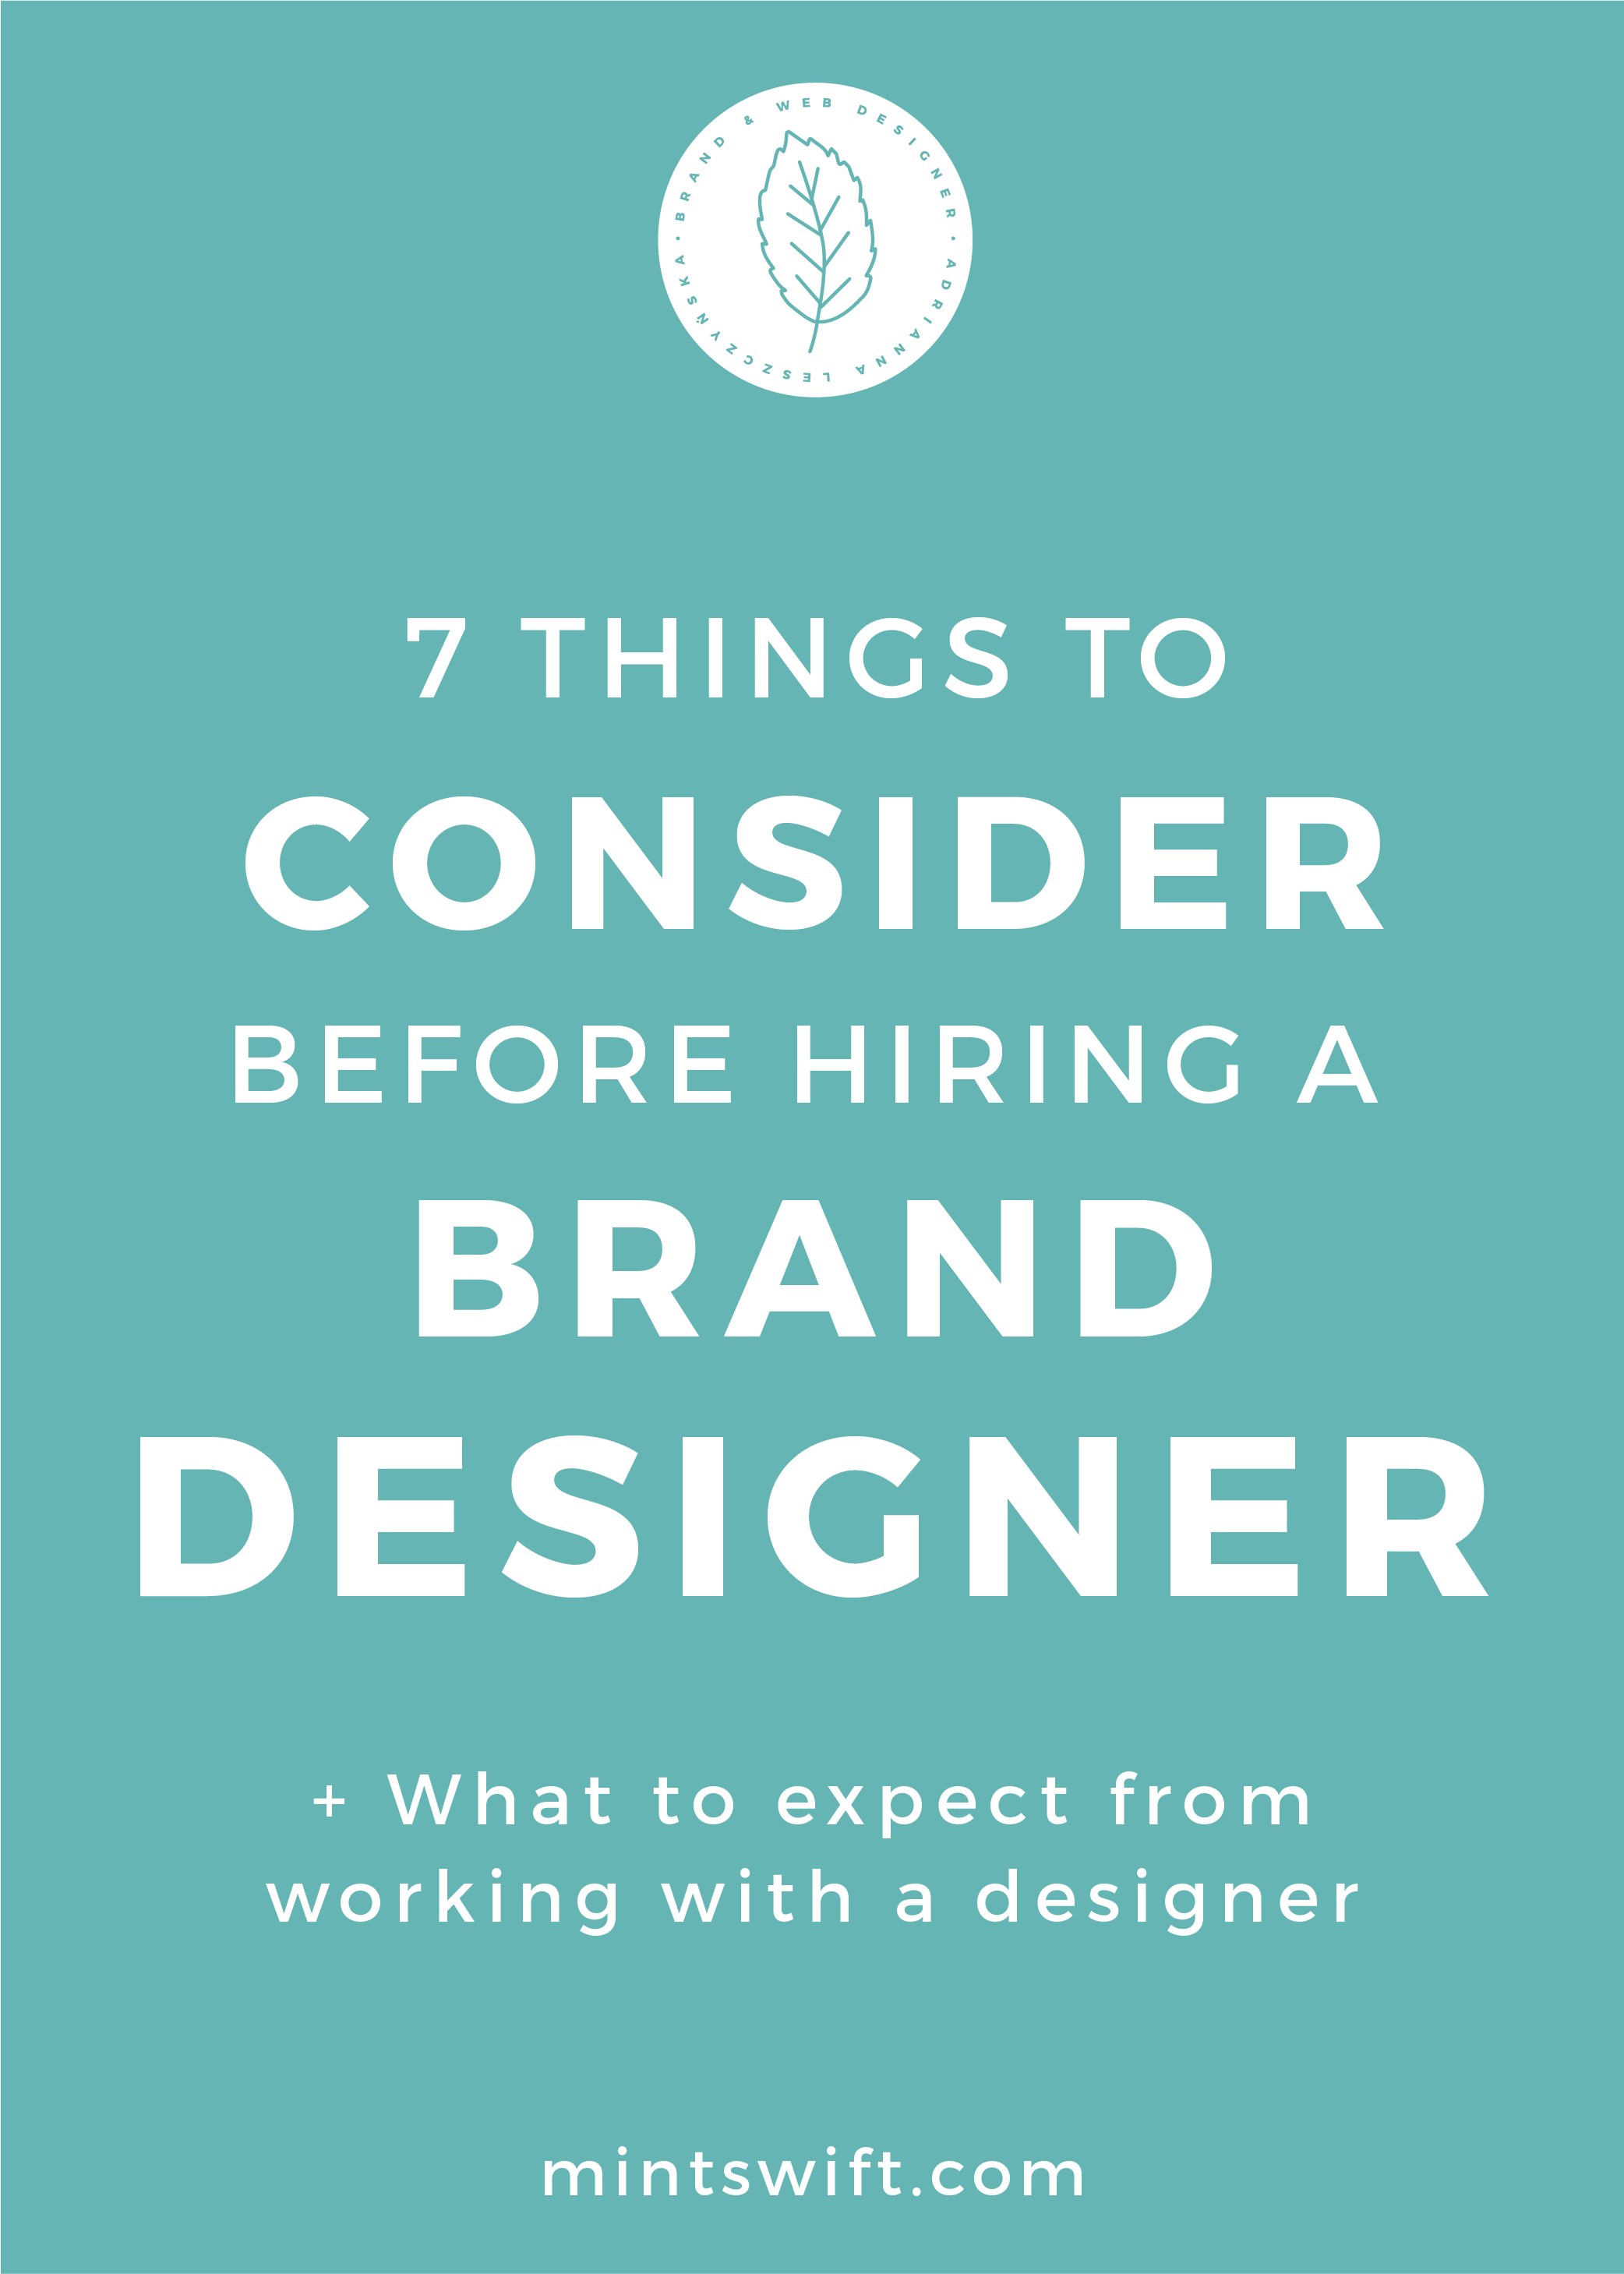 7 Things to Consider Before Hiring a Brand Designer (+ What to Expect from Working with a Designer) - MintSwift